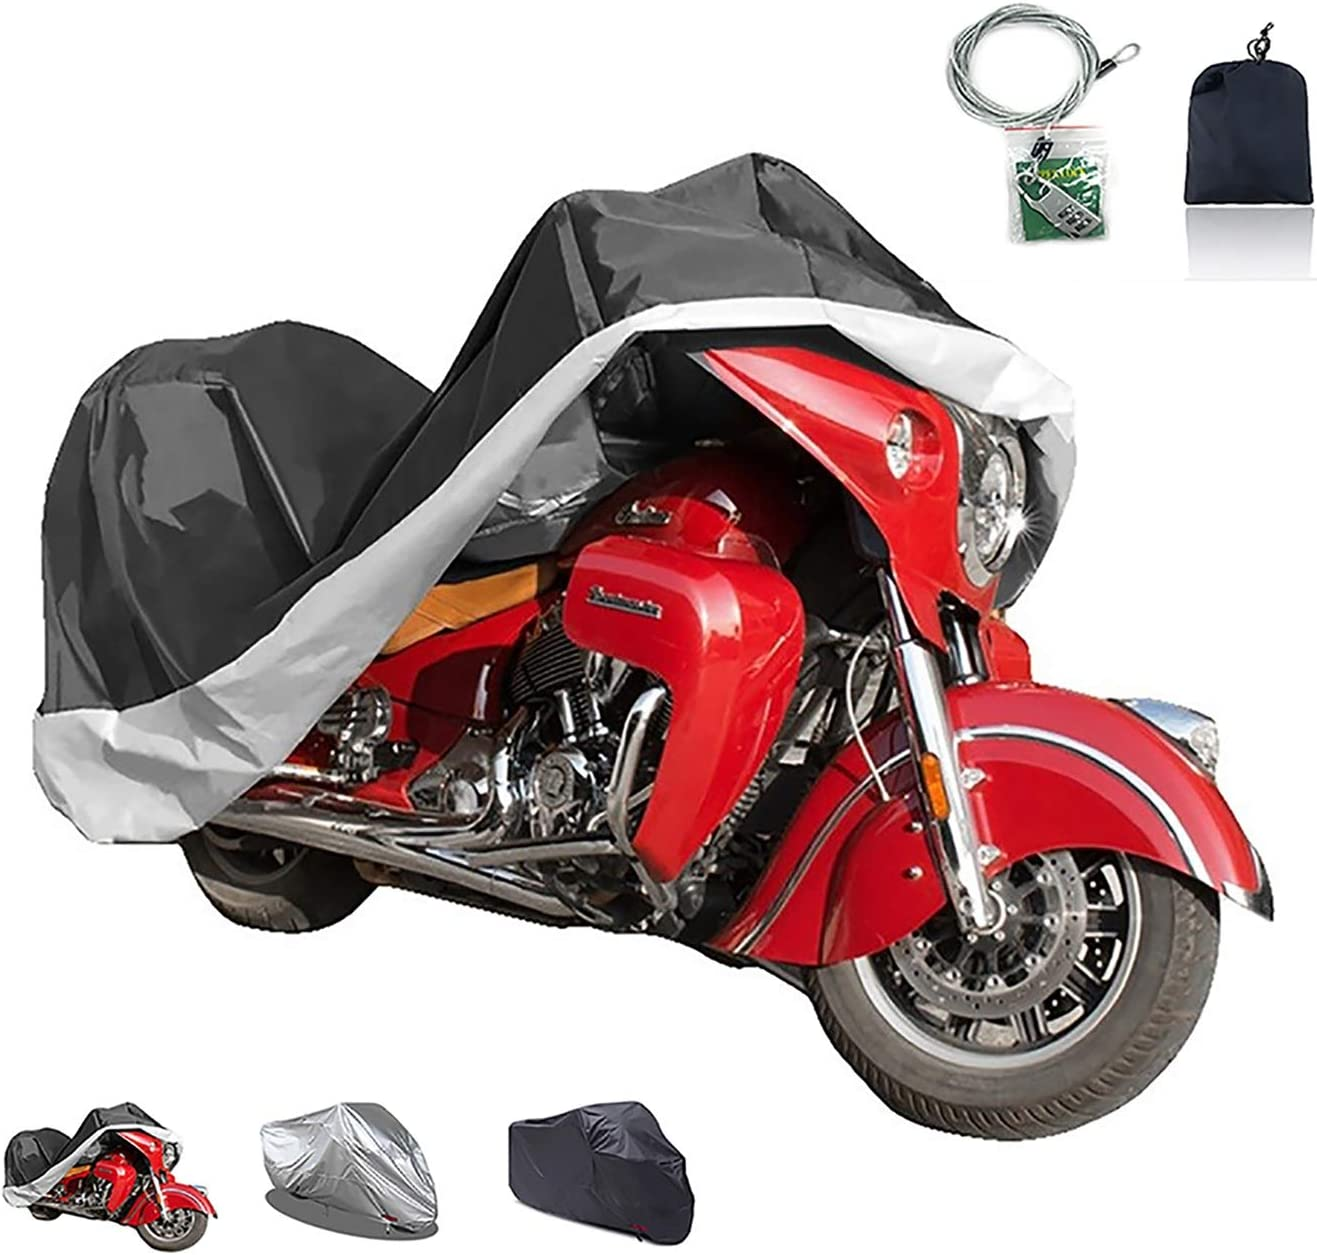 XJZHJXB service Motorcycle Cover Victor Compatible Limited Special Price with